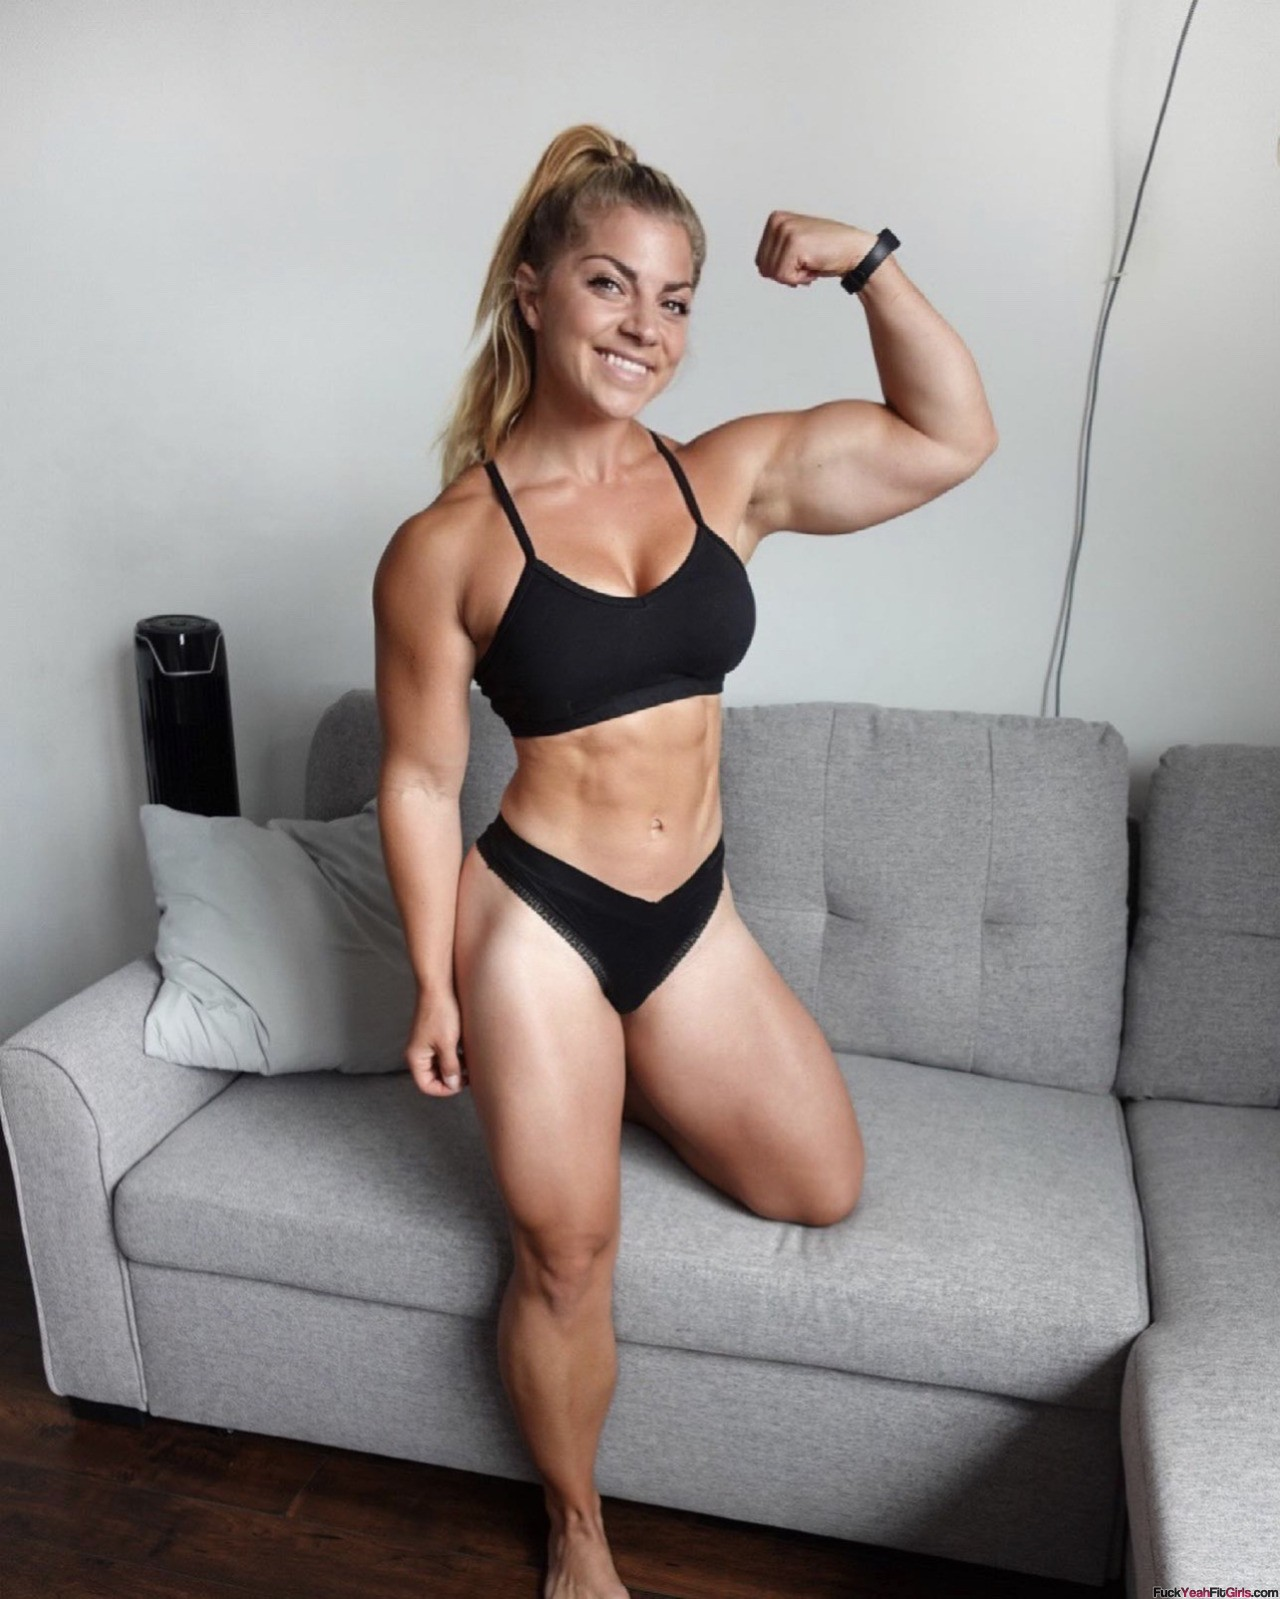 cute-fitness-babe-flexing